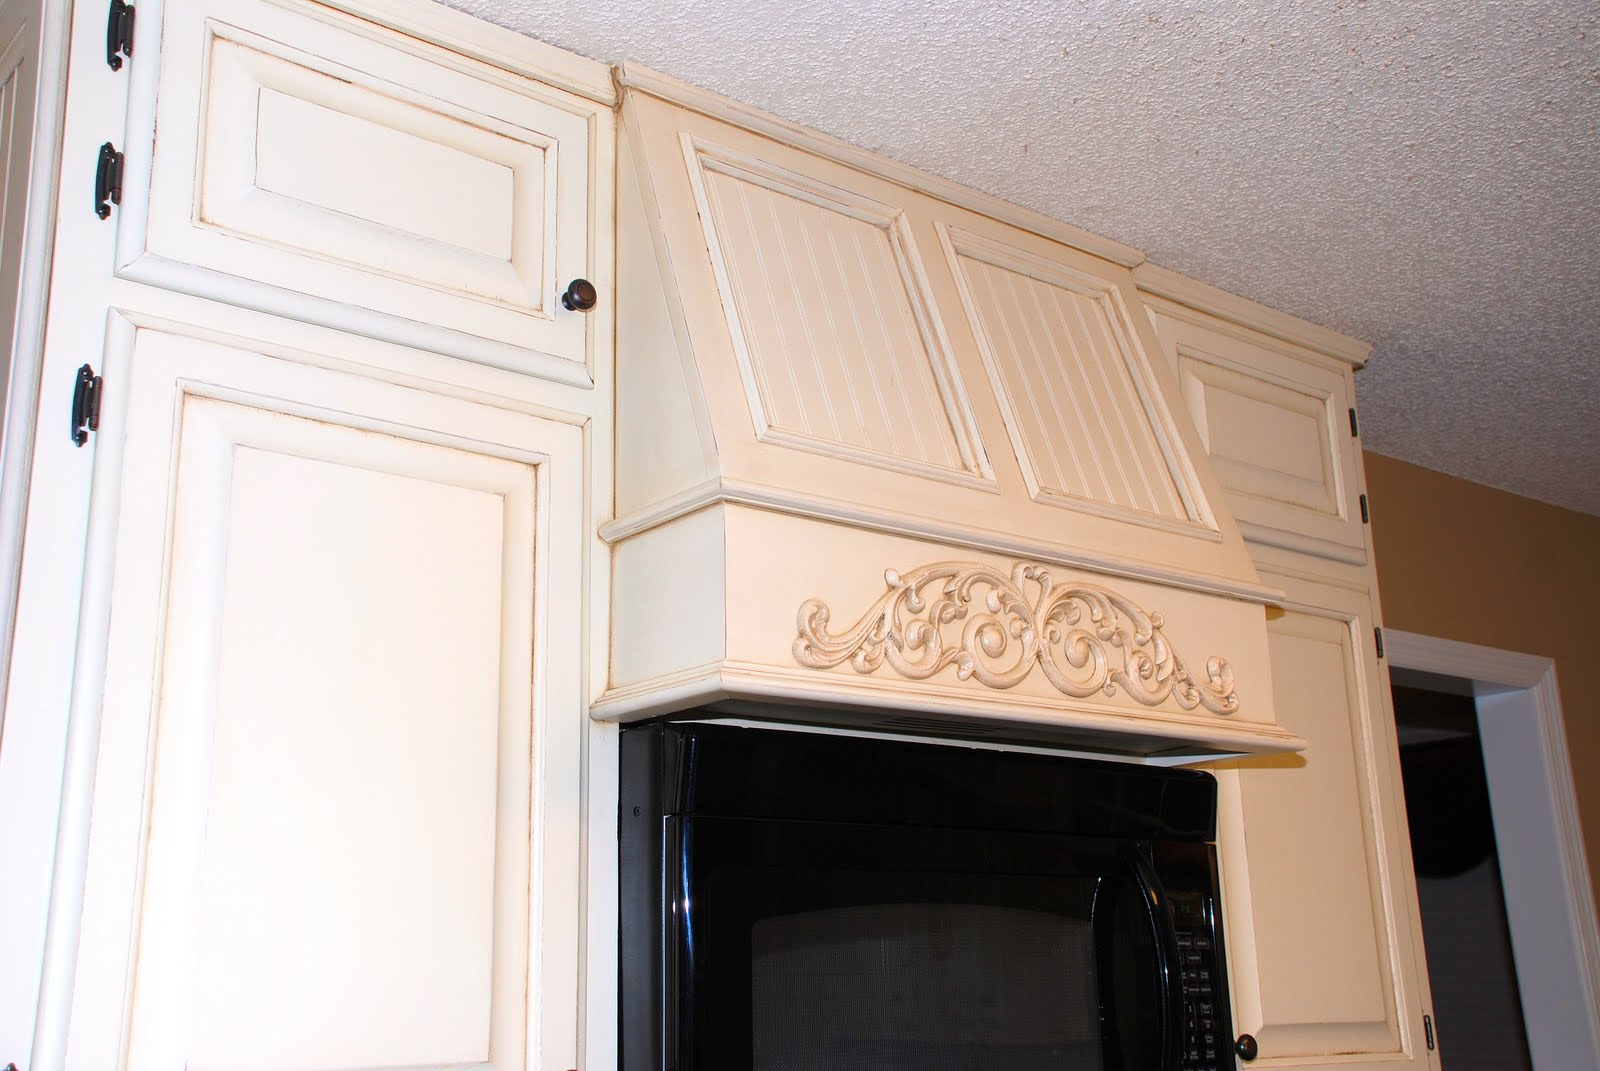 Awe Inspiring Remodelaholic From Oak Kitchen Cabinets To Painted White Download Free Architecture Designs Rallybritishbridgeorg